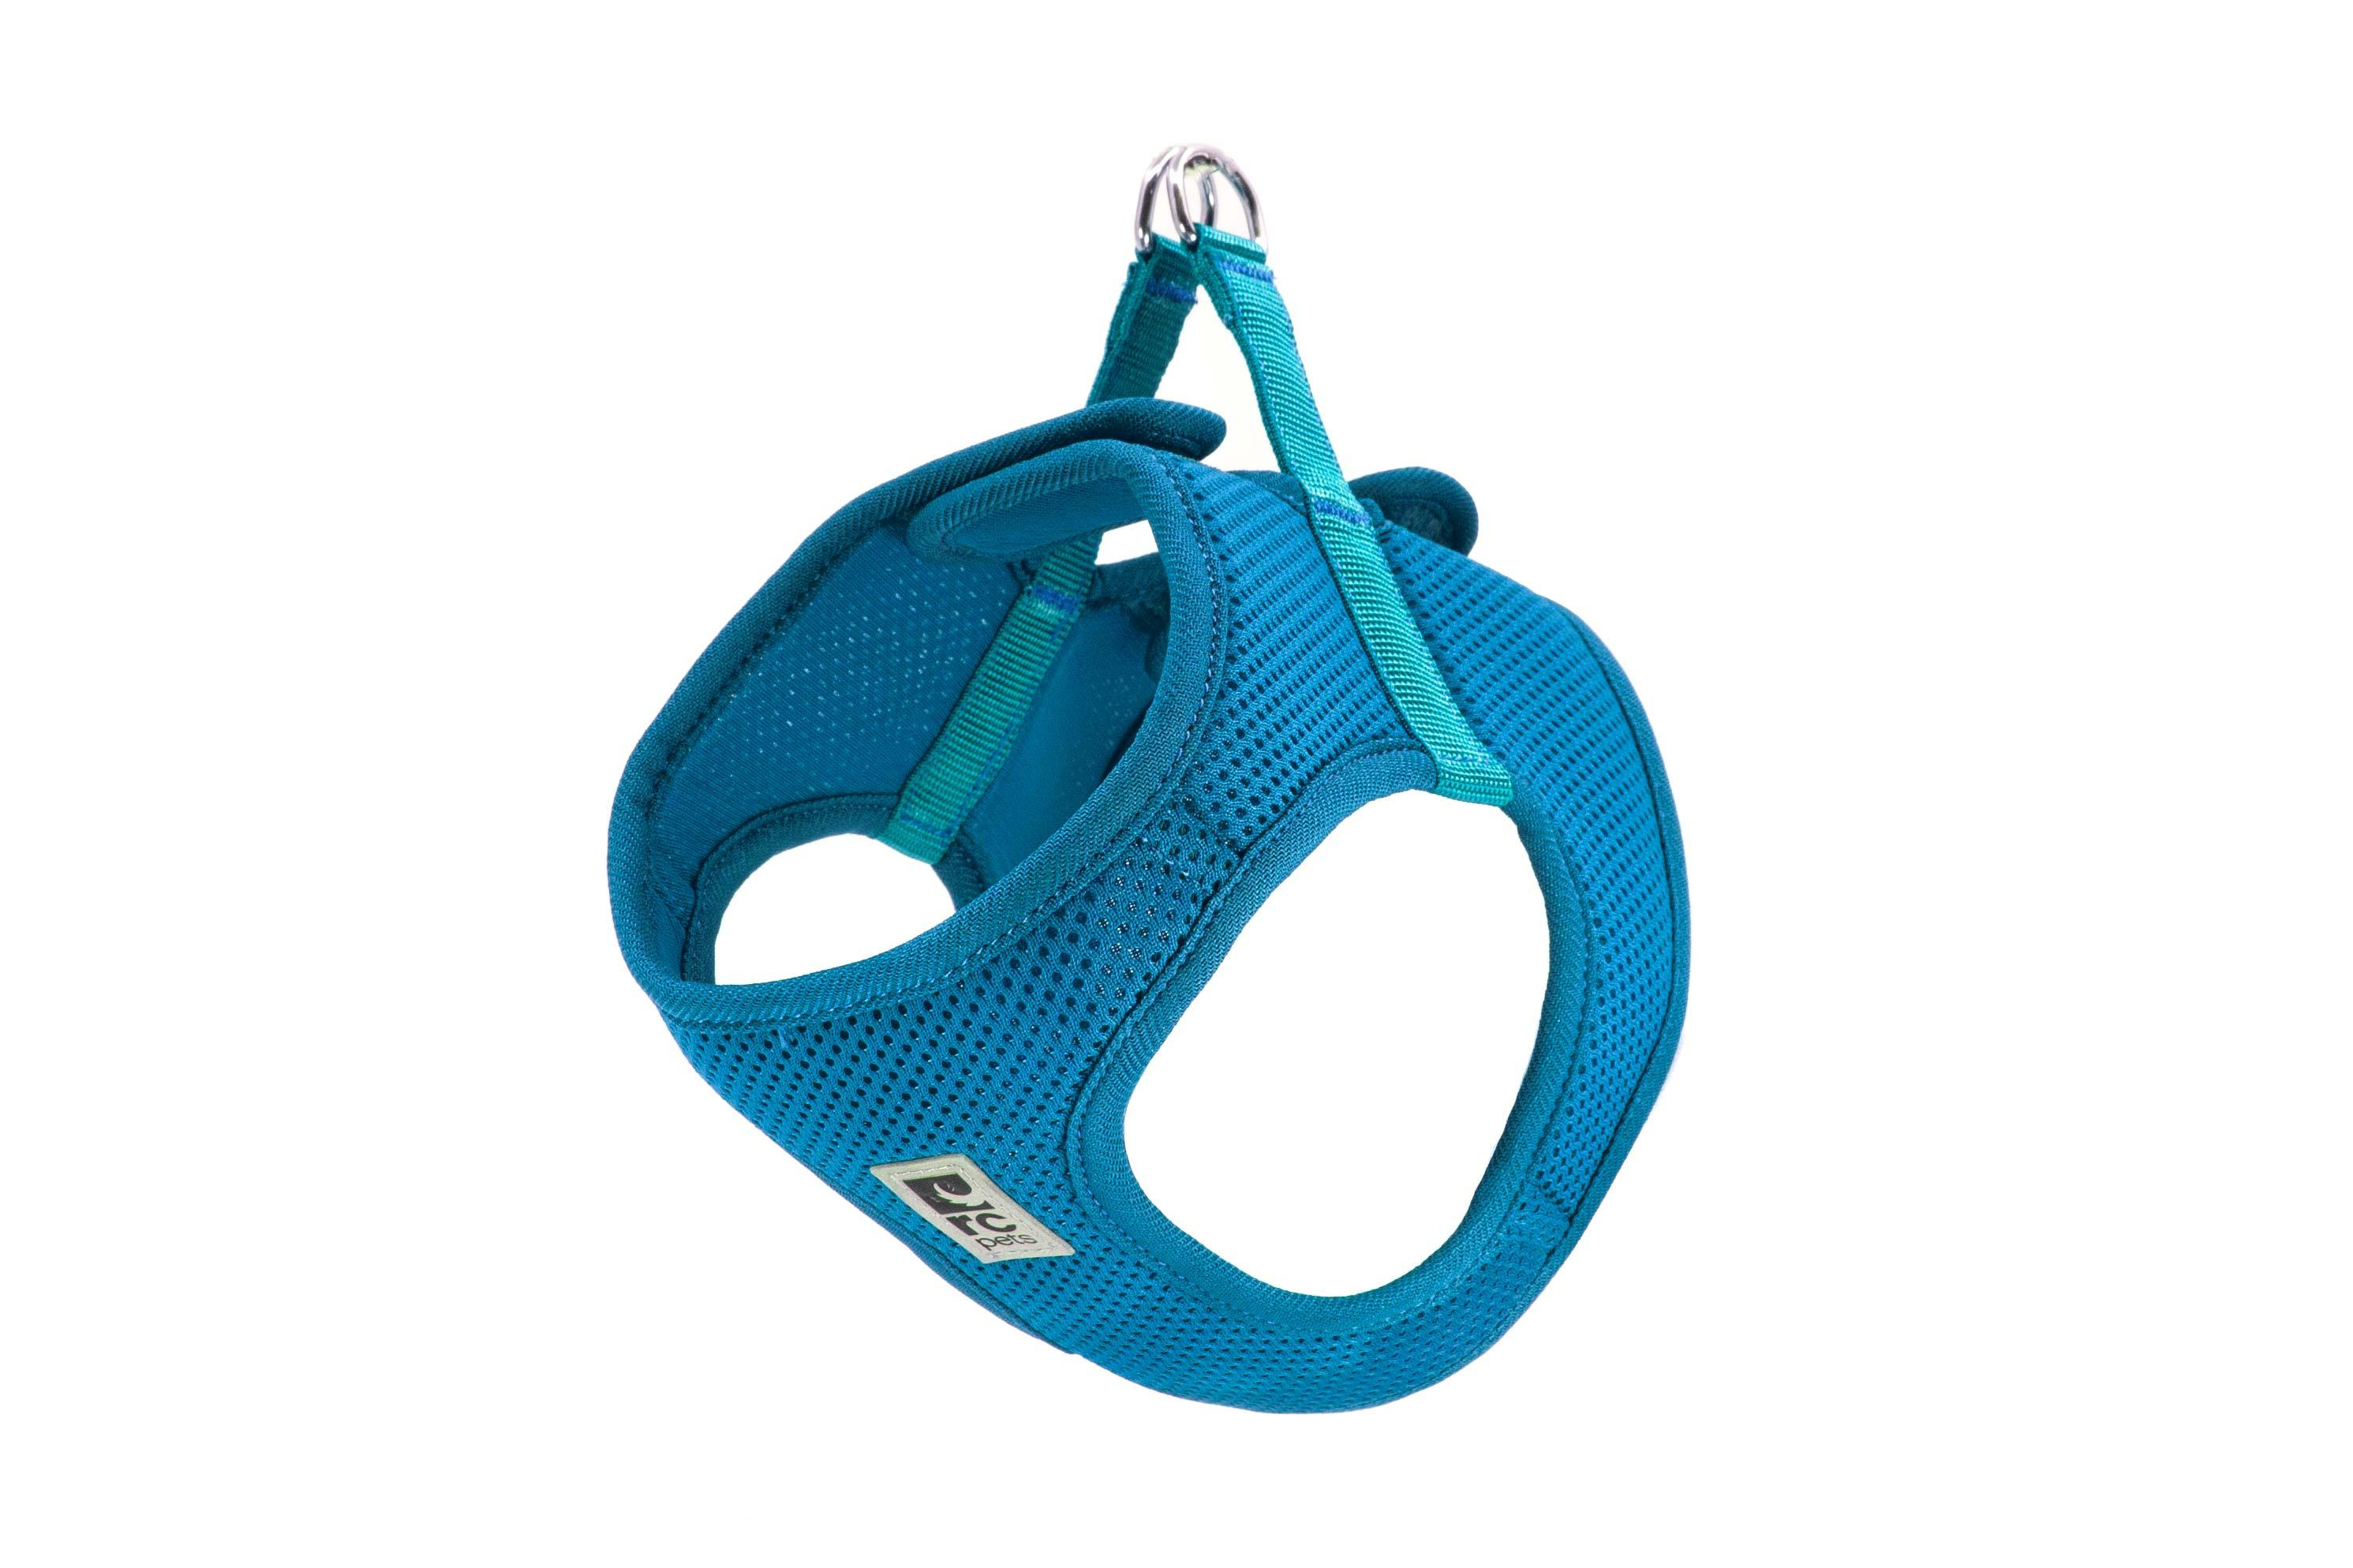 RC Pet Products Step In Cirque Dog Harness, Dark Teal, X-Small